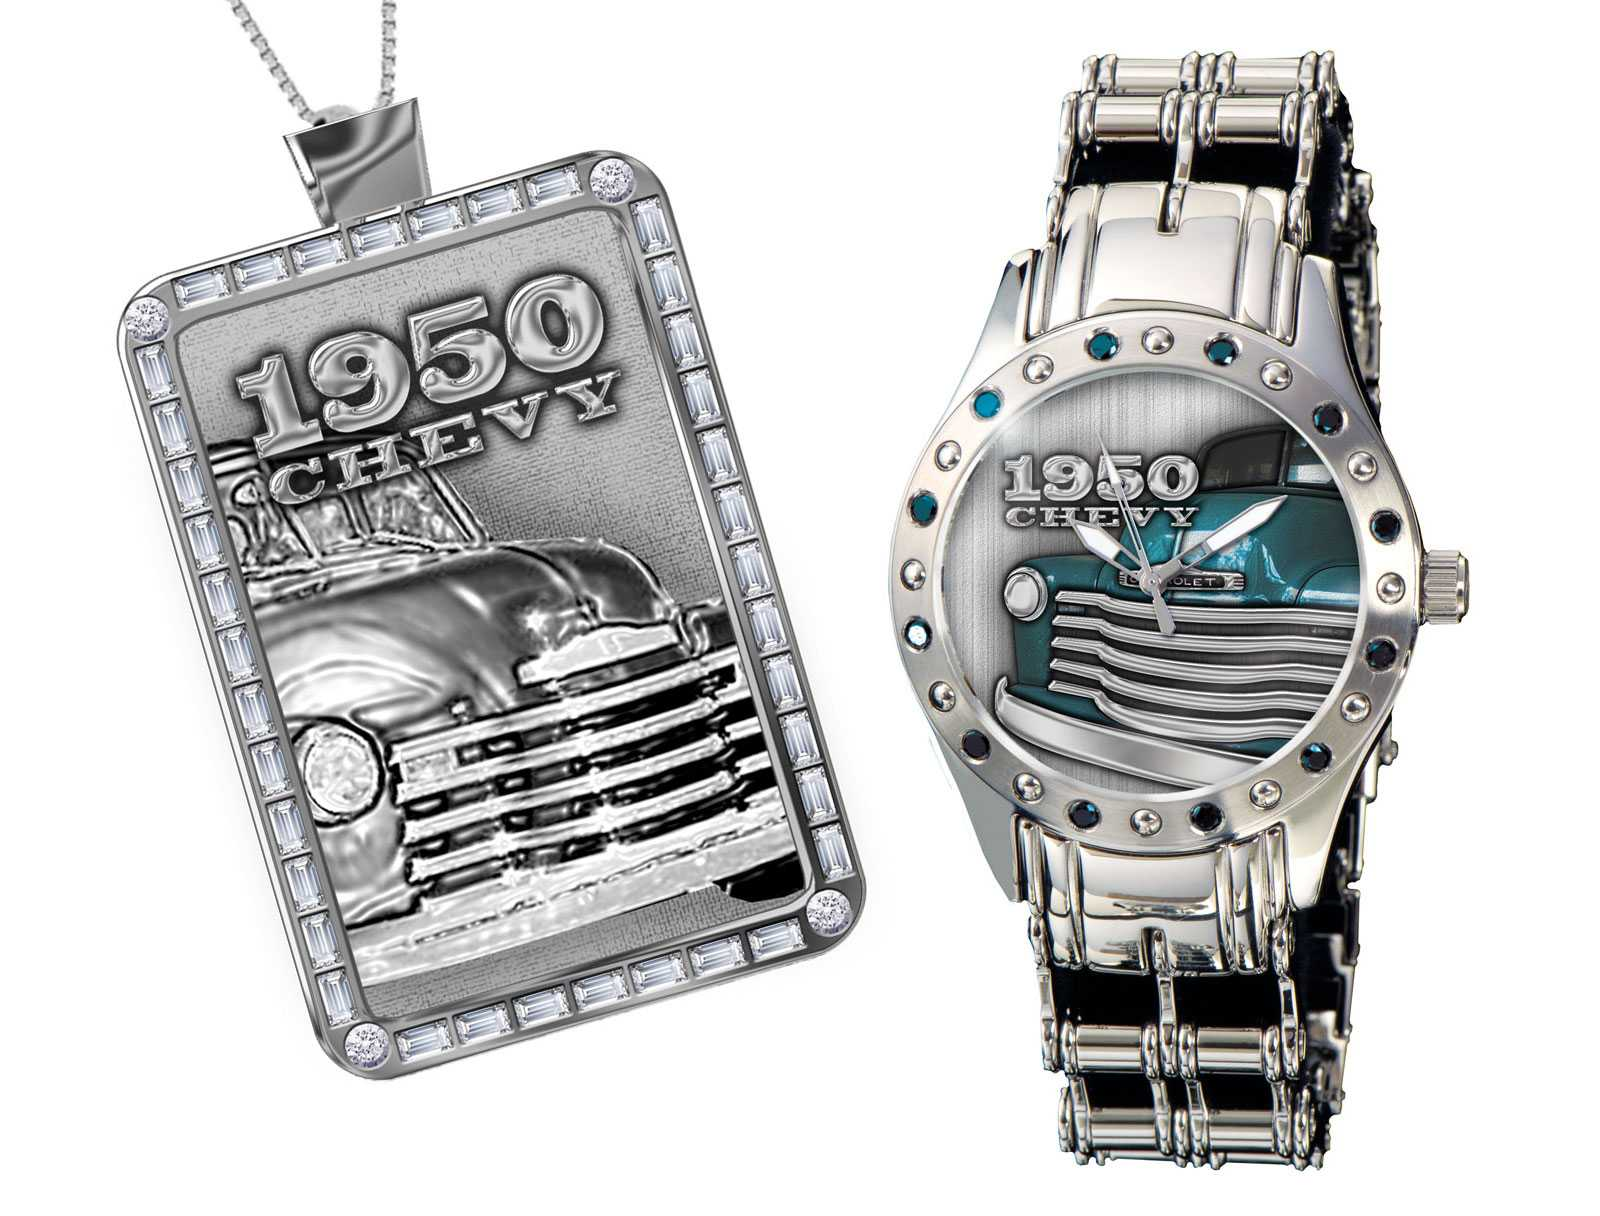 """1950 Chevy"" Custom Watch & Dog Tag Set"